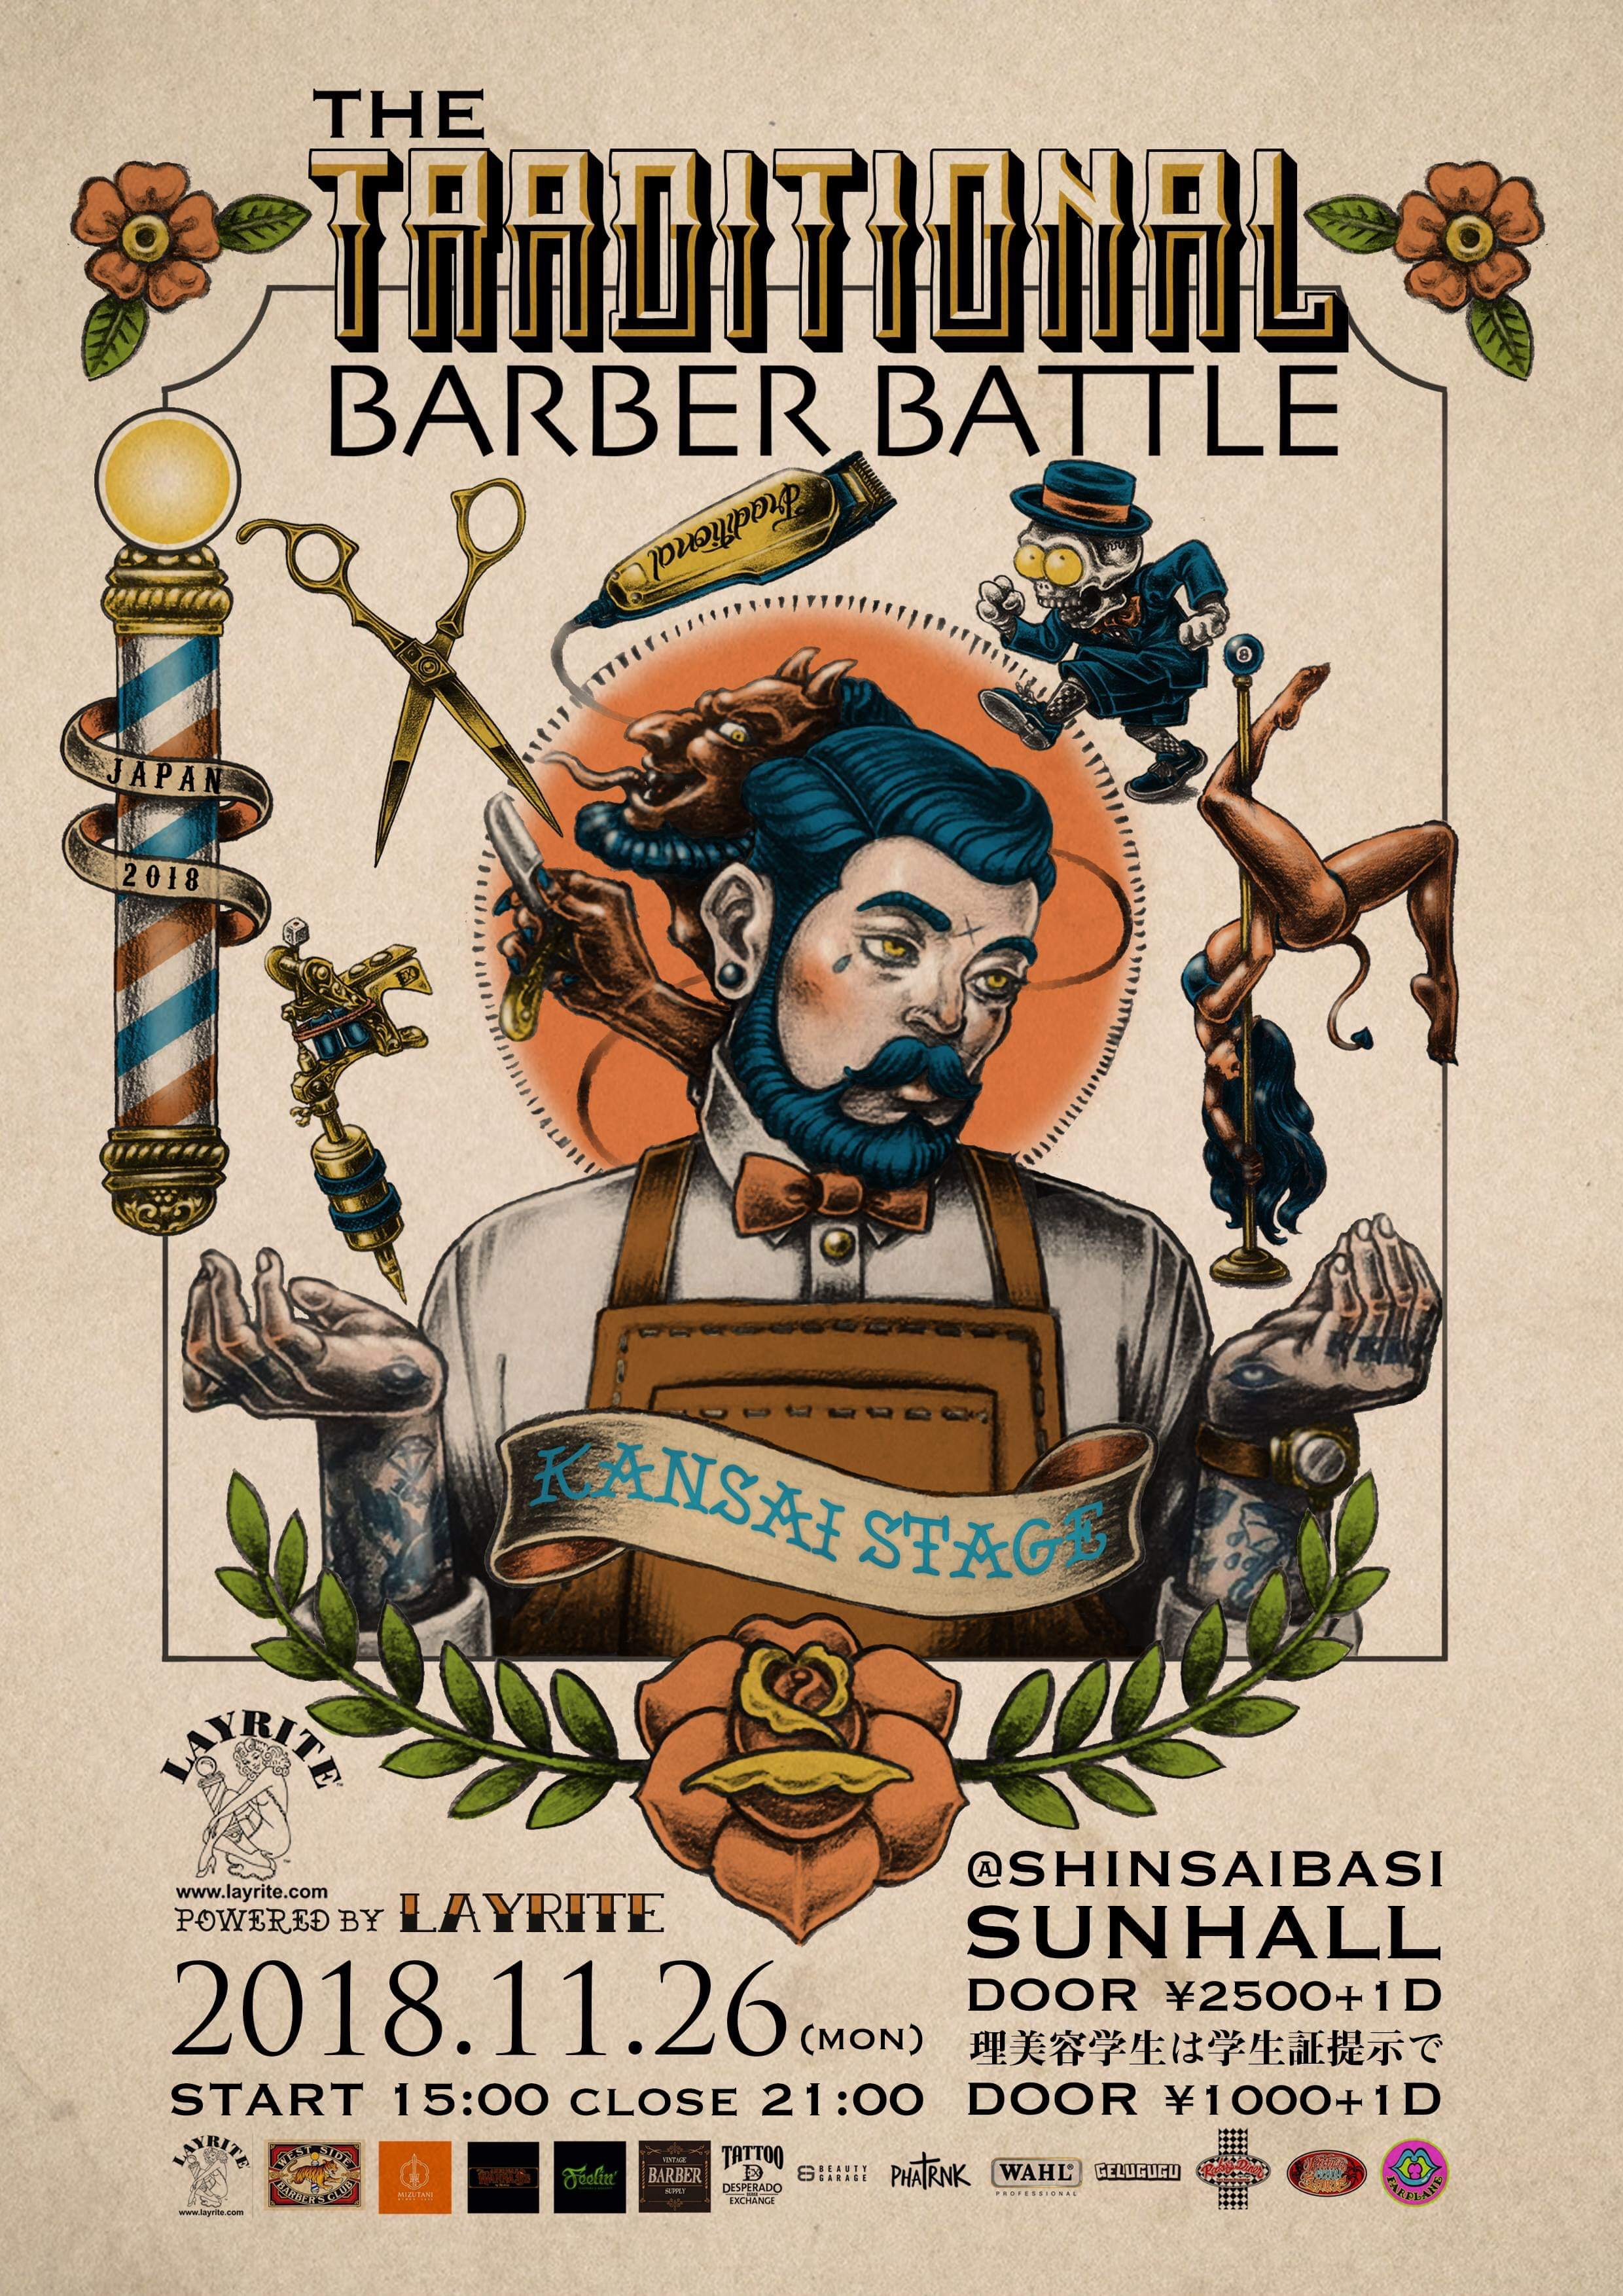 THE TRADITIONAL BARBER BATTLE JAPAN 2018 〜KANSAI STAGE〜  powered by LAYRITE